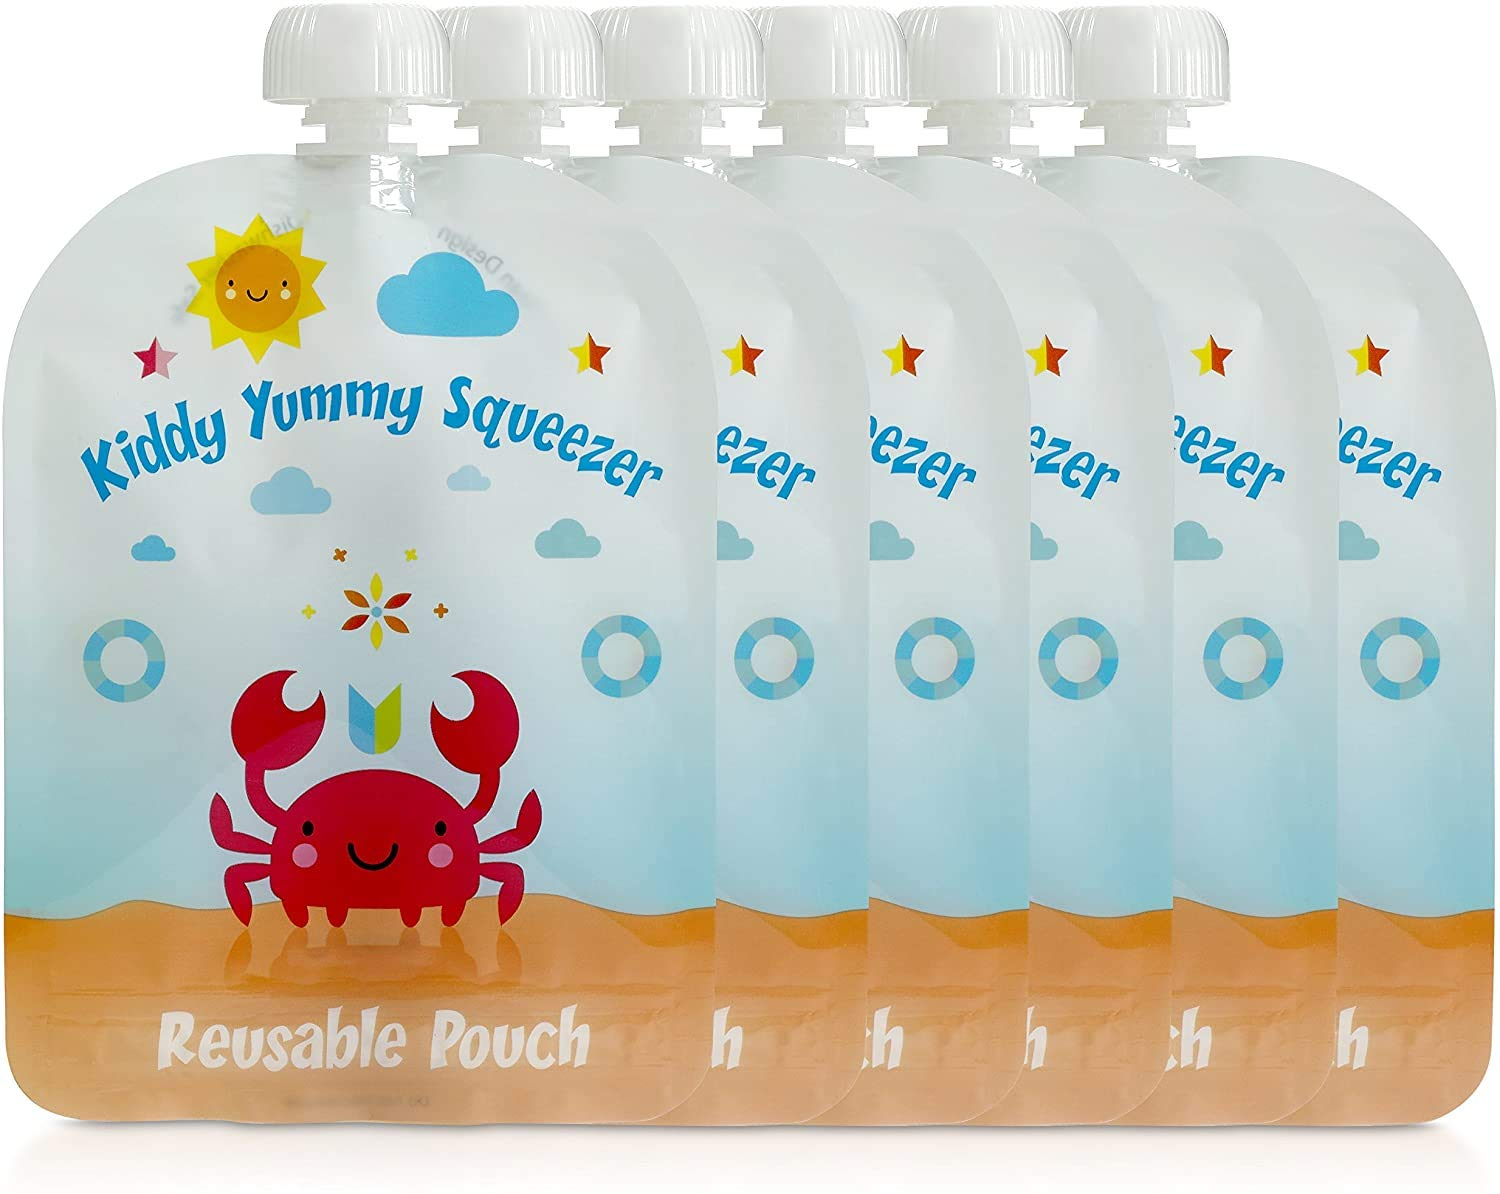 Reusable Food Pouch - Refillable Squeeze Pouches Kids of All Ages Love, Pack of 6 Large Pouches